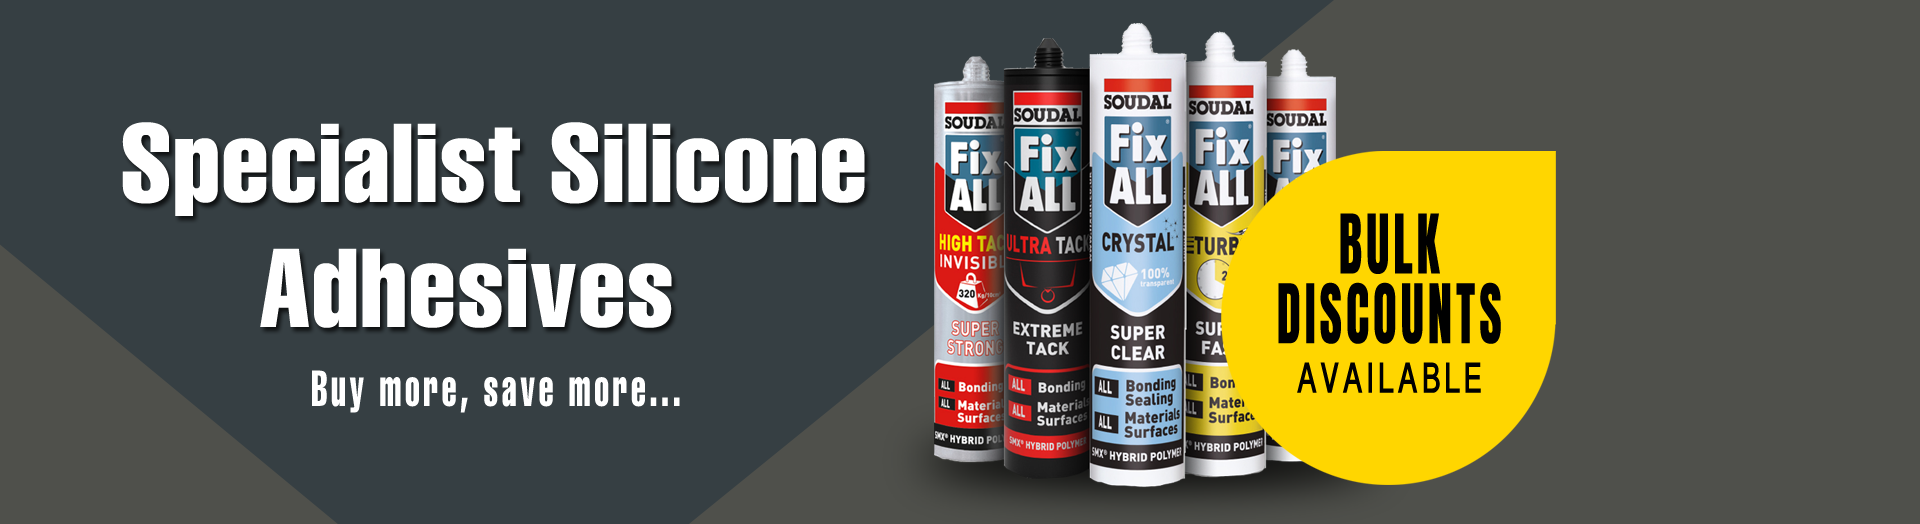 Specialist Silicone Adhesives